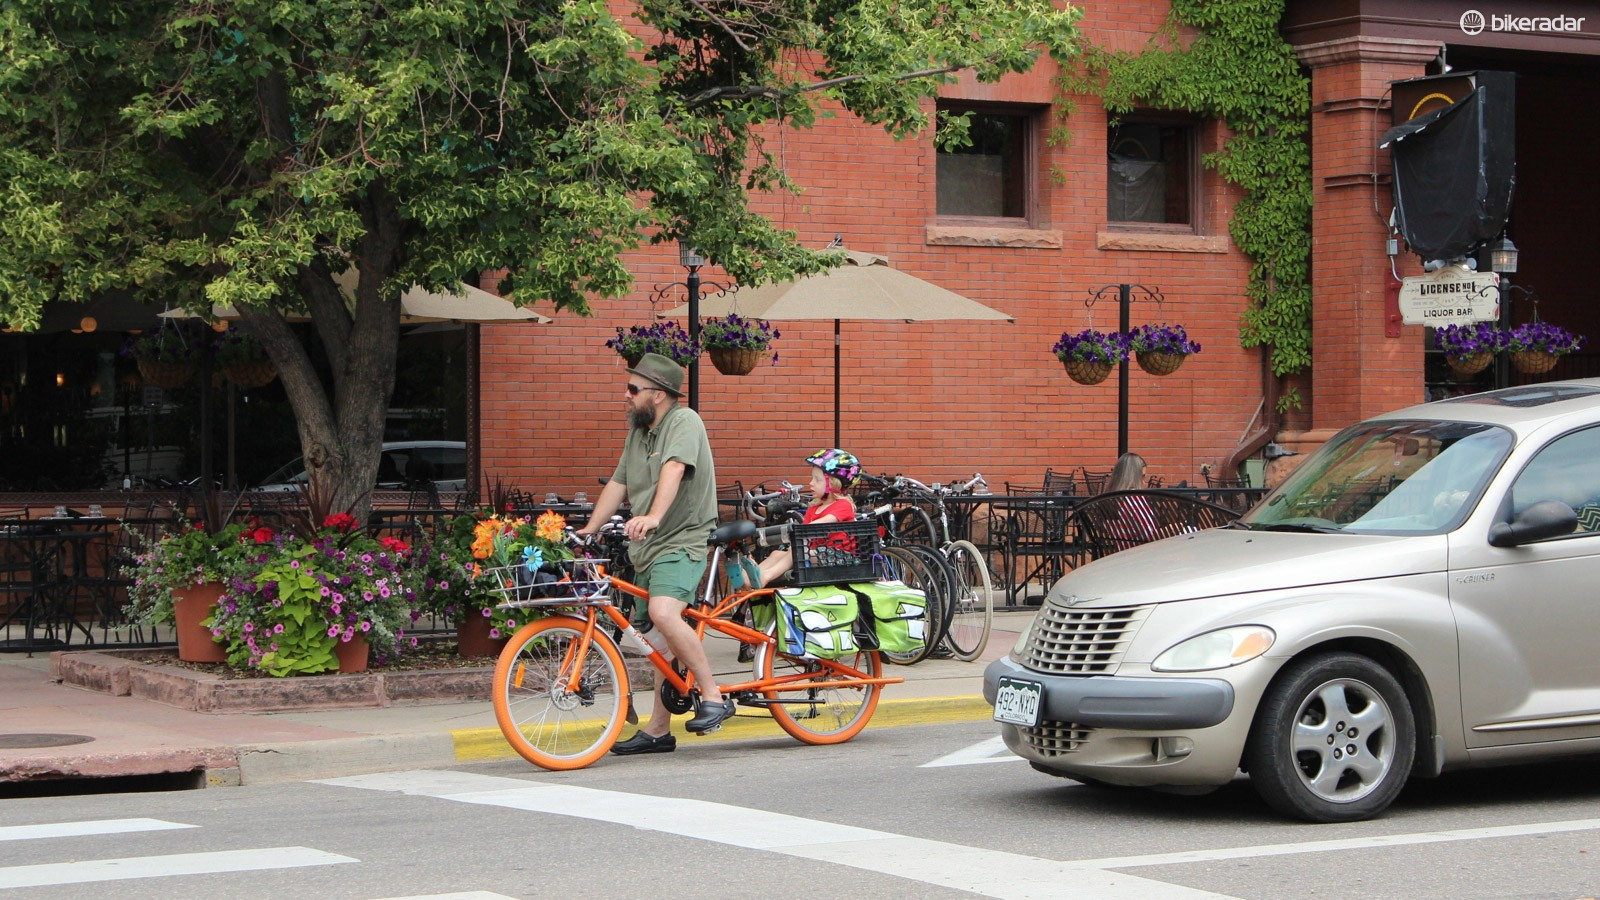 The CU study took place in Boulder, Colorado, which has a high percentage of cyclists compared to the rest of the United States